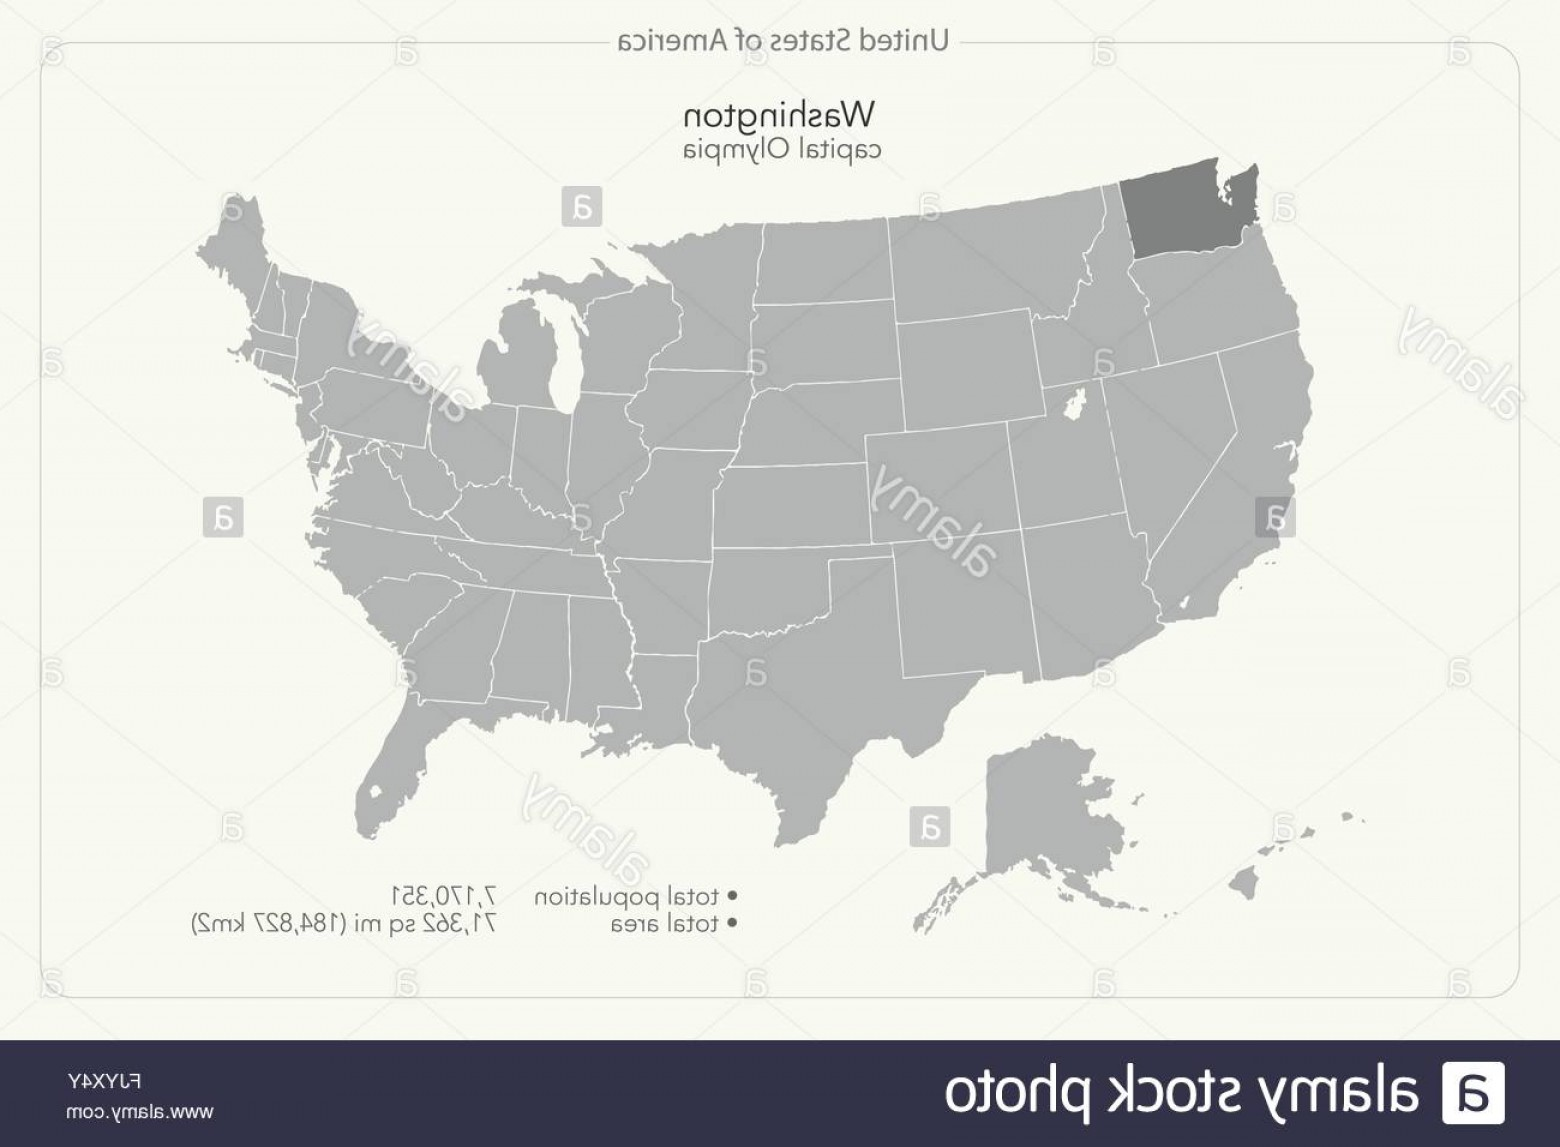 Washington State Map Vector: Stock Photo United States Of America Isolated Map And Washington State Territory